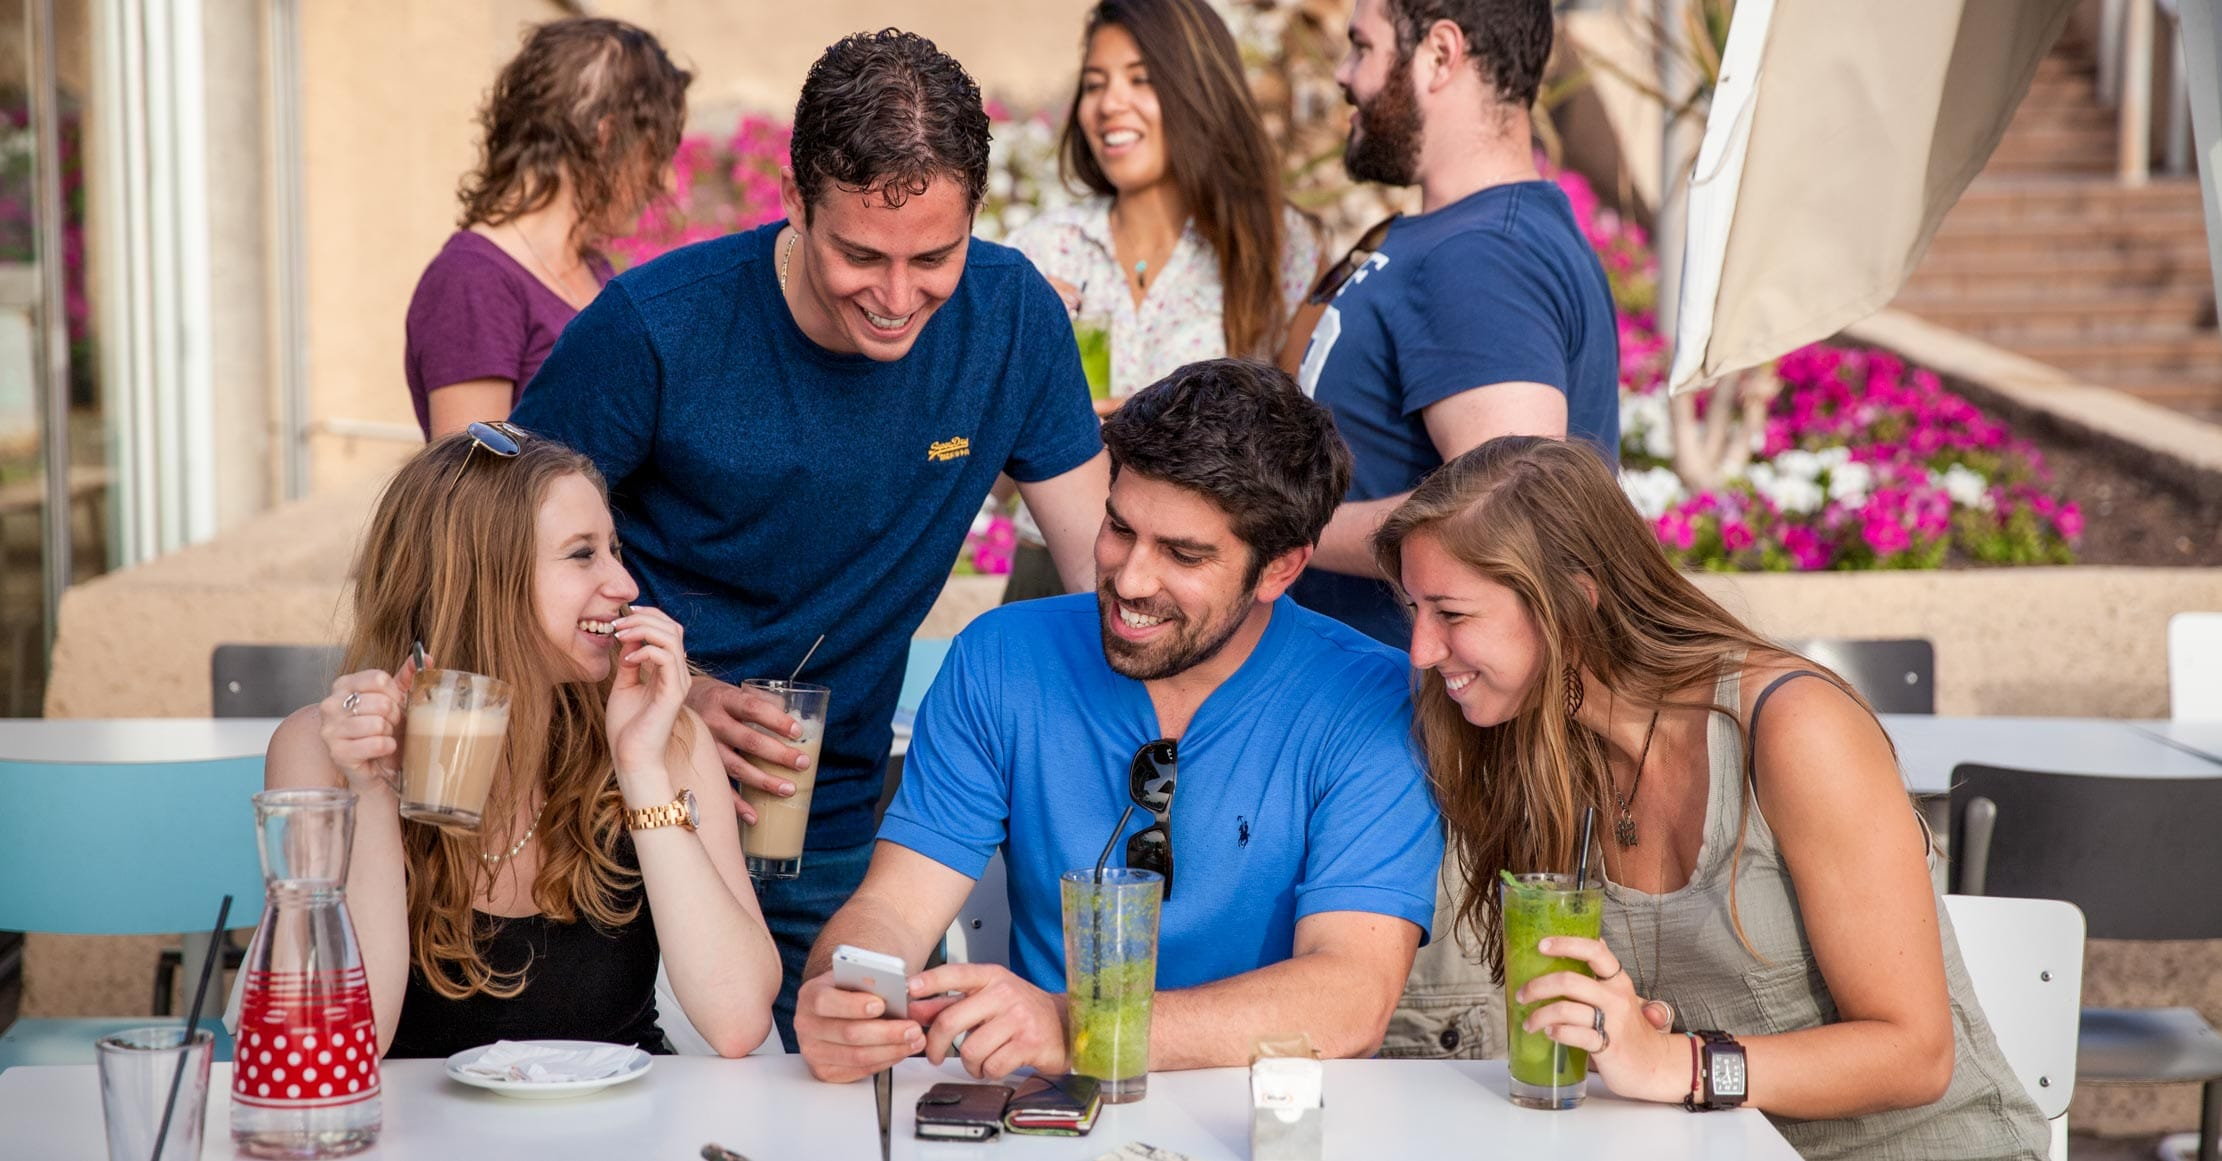 Young adults at cafe in Israel